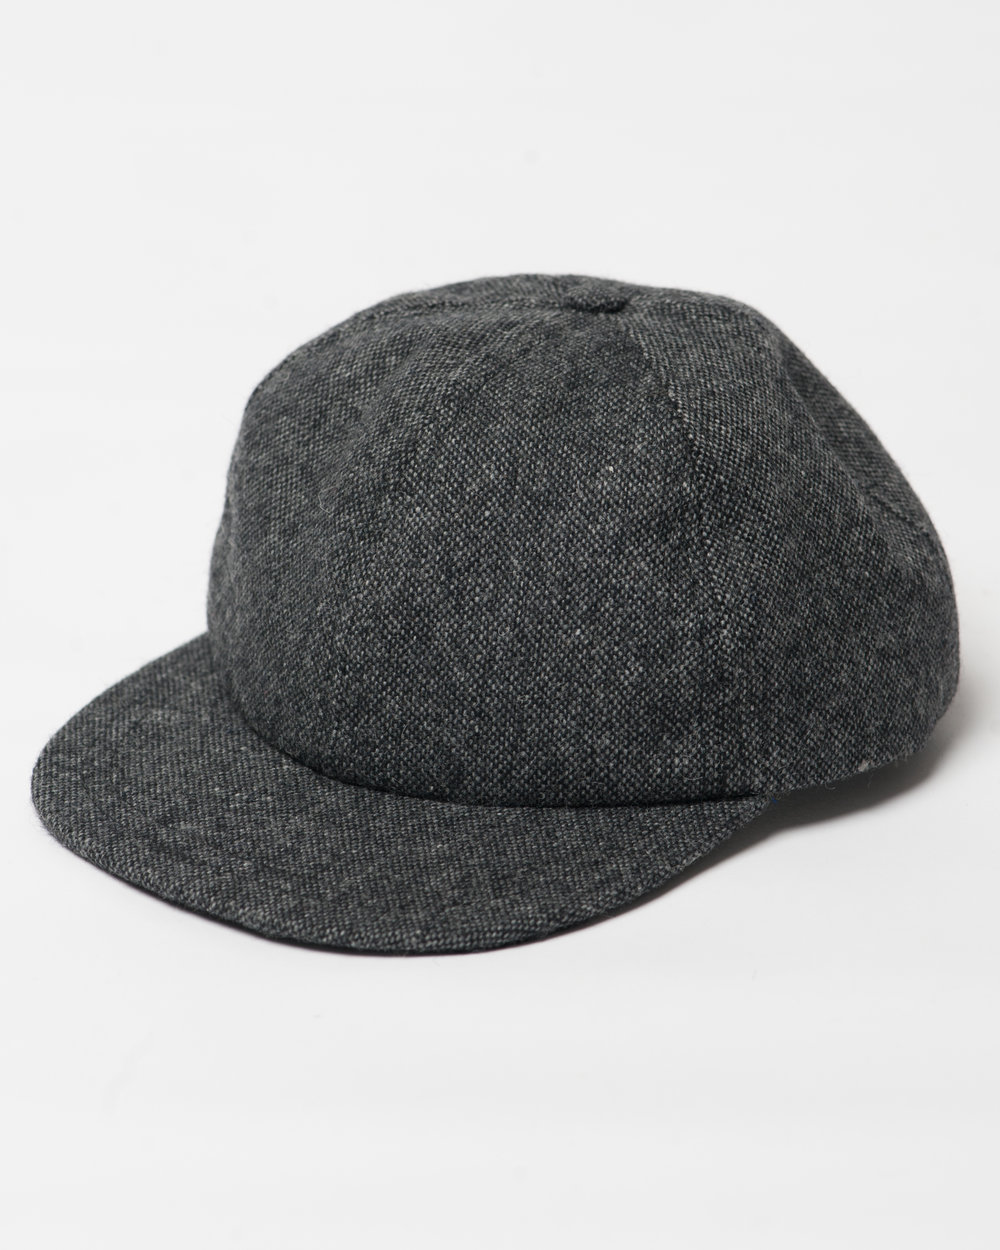 Kids Black Mix Wool Cap Front FW17.jpg